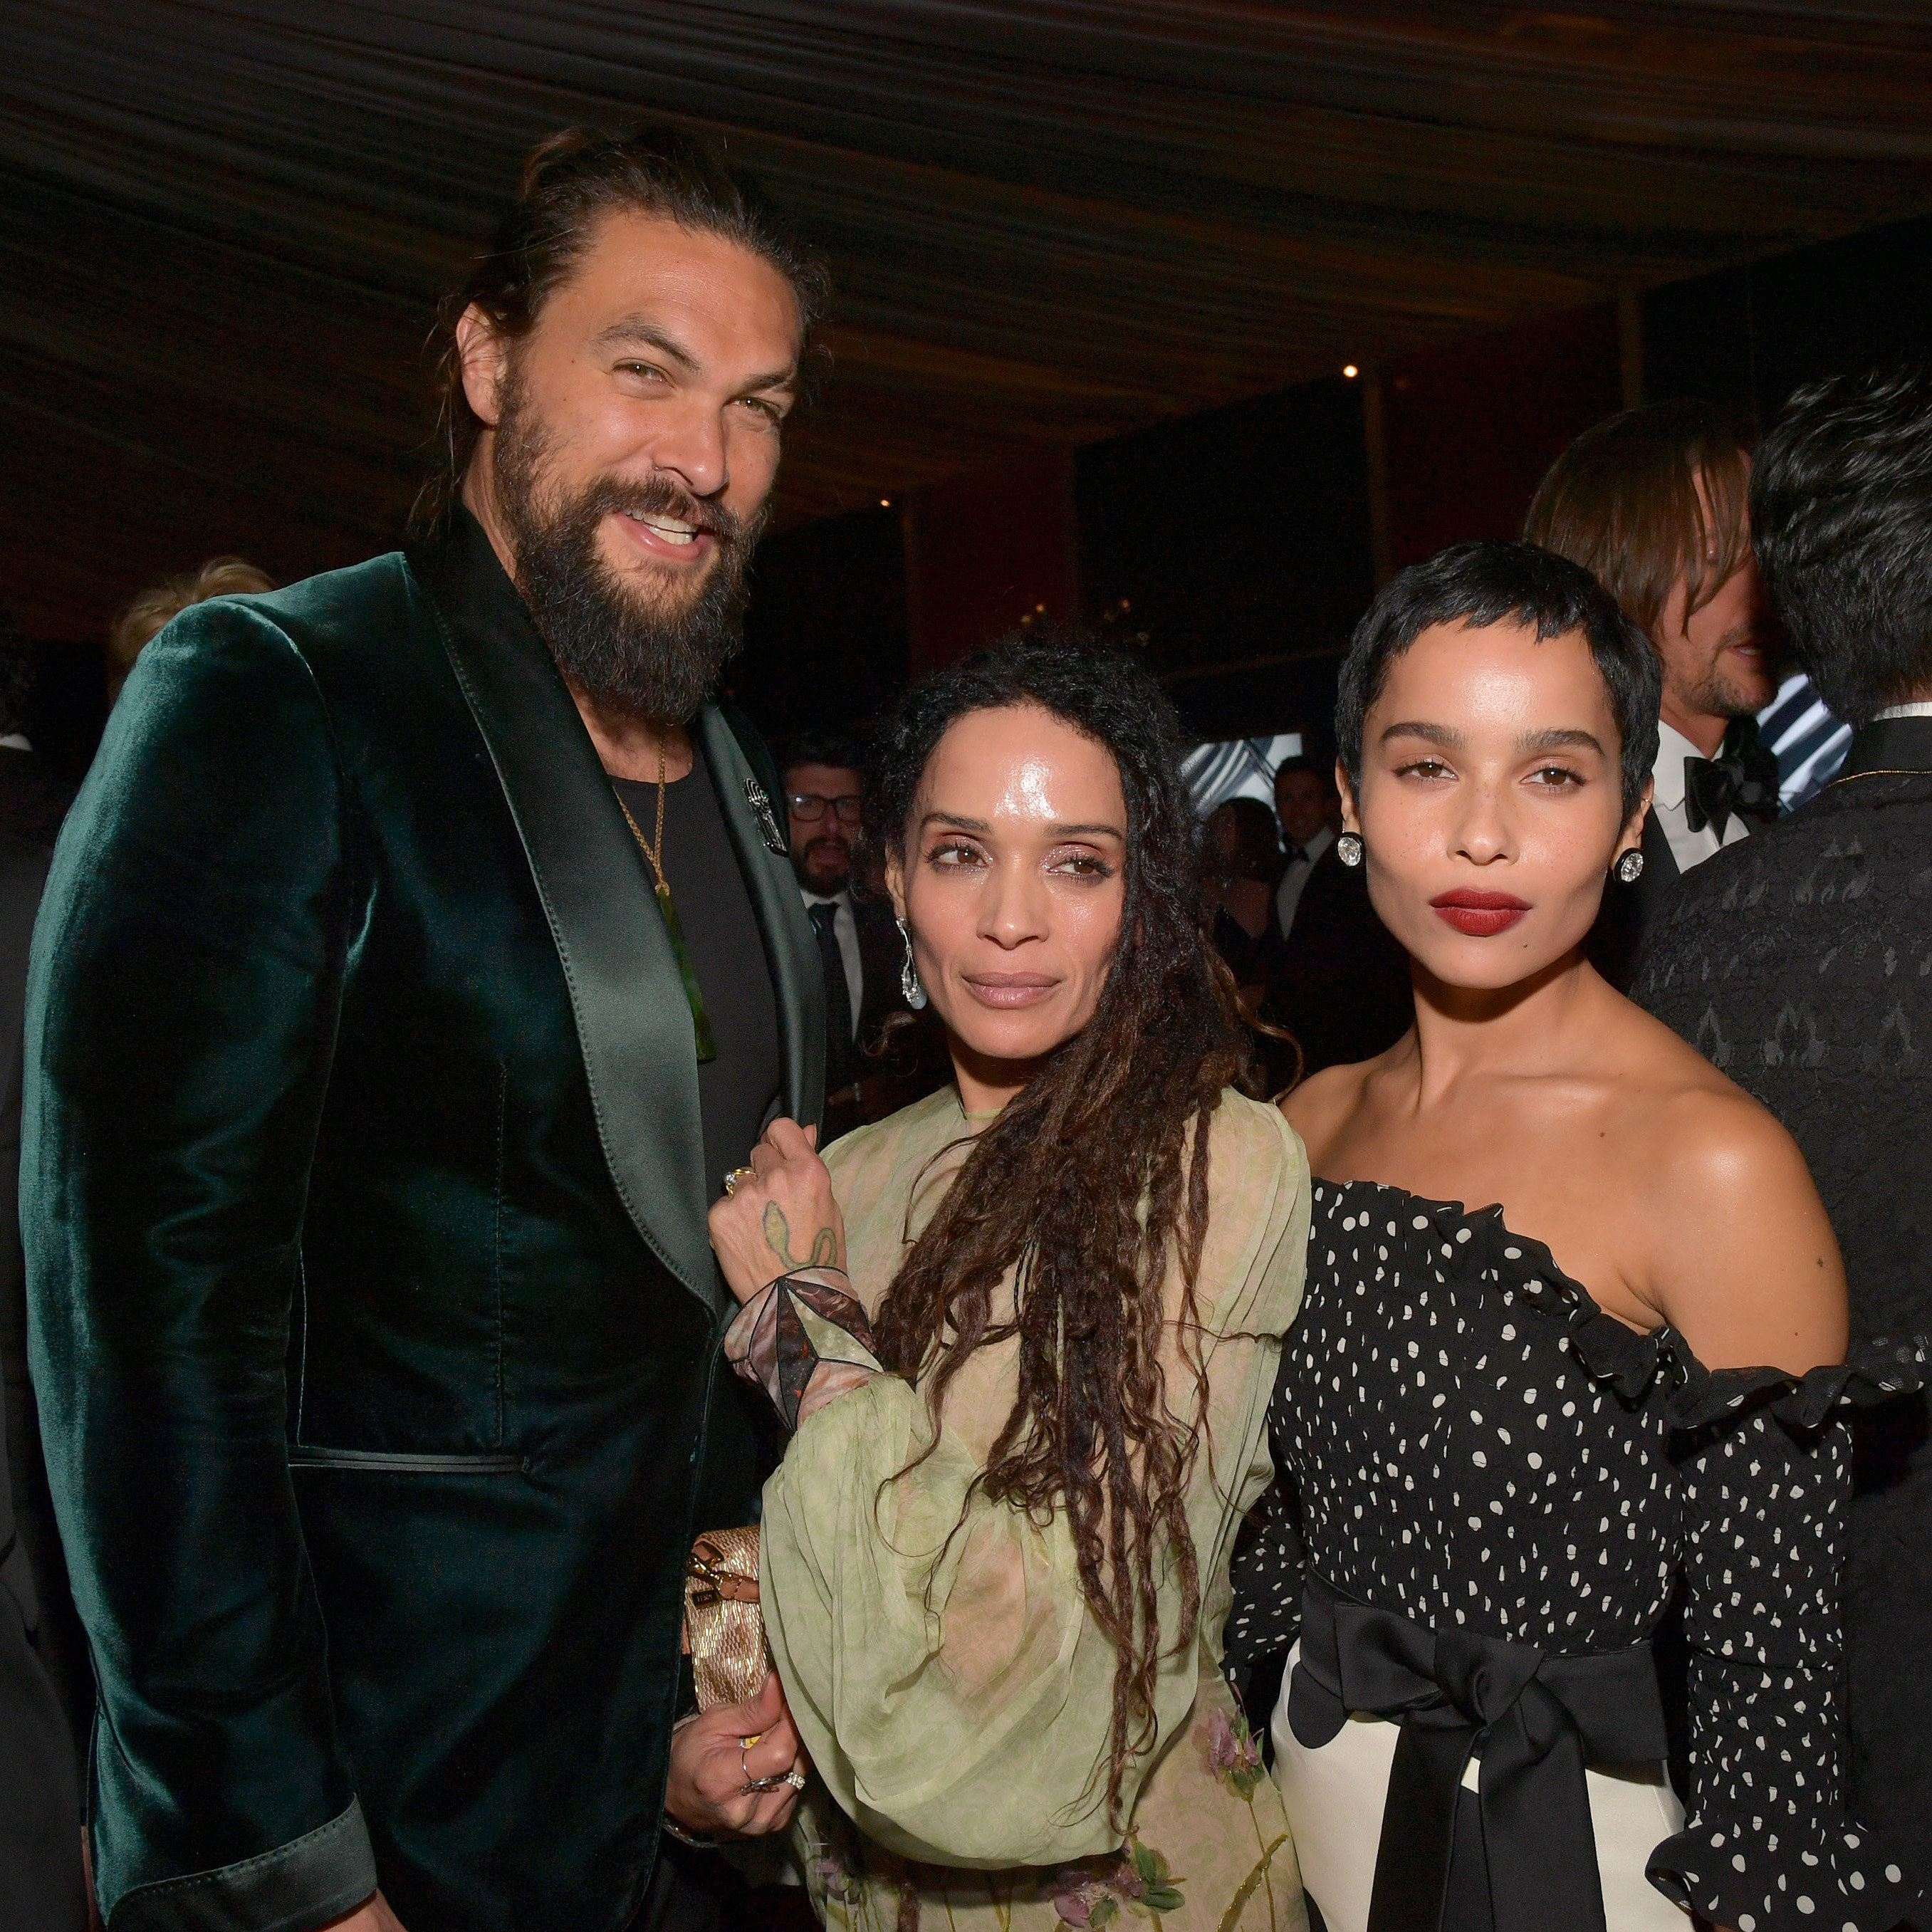 Jason Momoa, Lisa Bonet, and Zoë Kravitz are pictured at a Golden Globe Awards after party in 2020